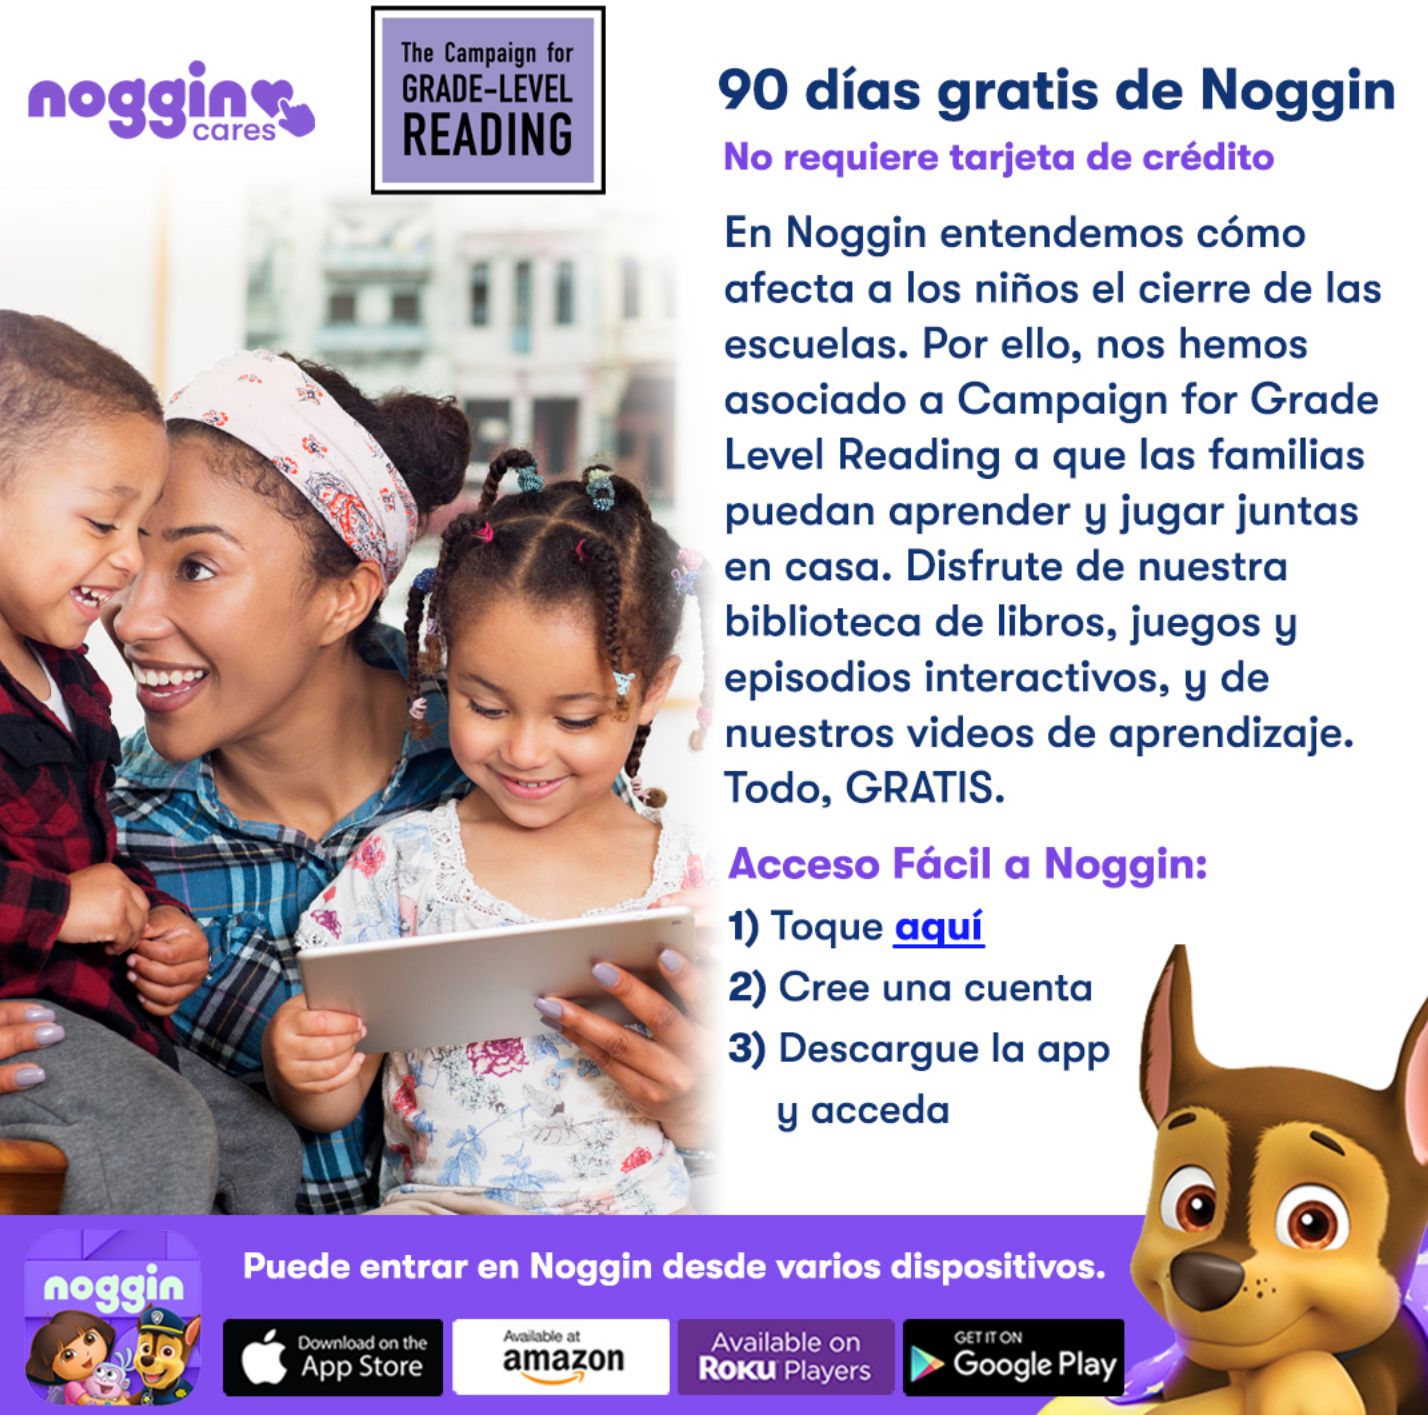 Noggin GLR info flyer in Spanish